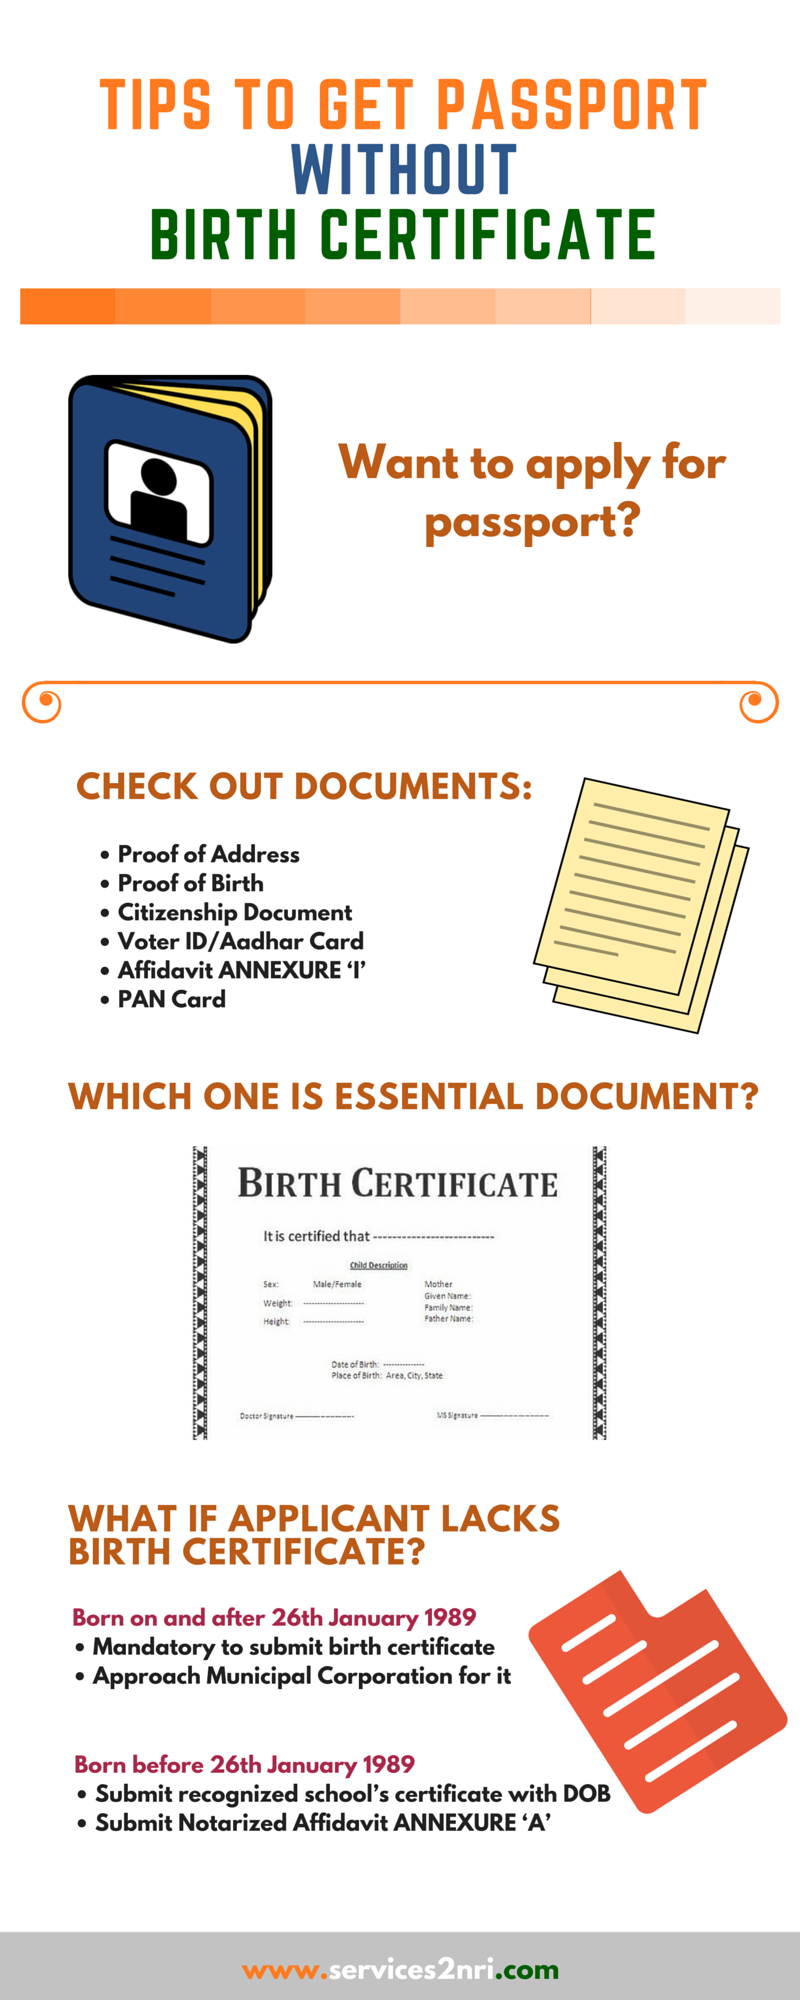 How nris can get passport without birth certificate tips to get passport without birth certificate ccuart Gallery